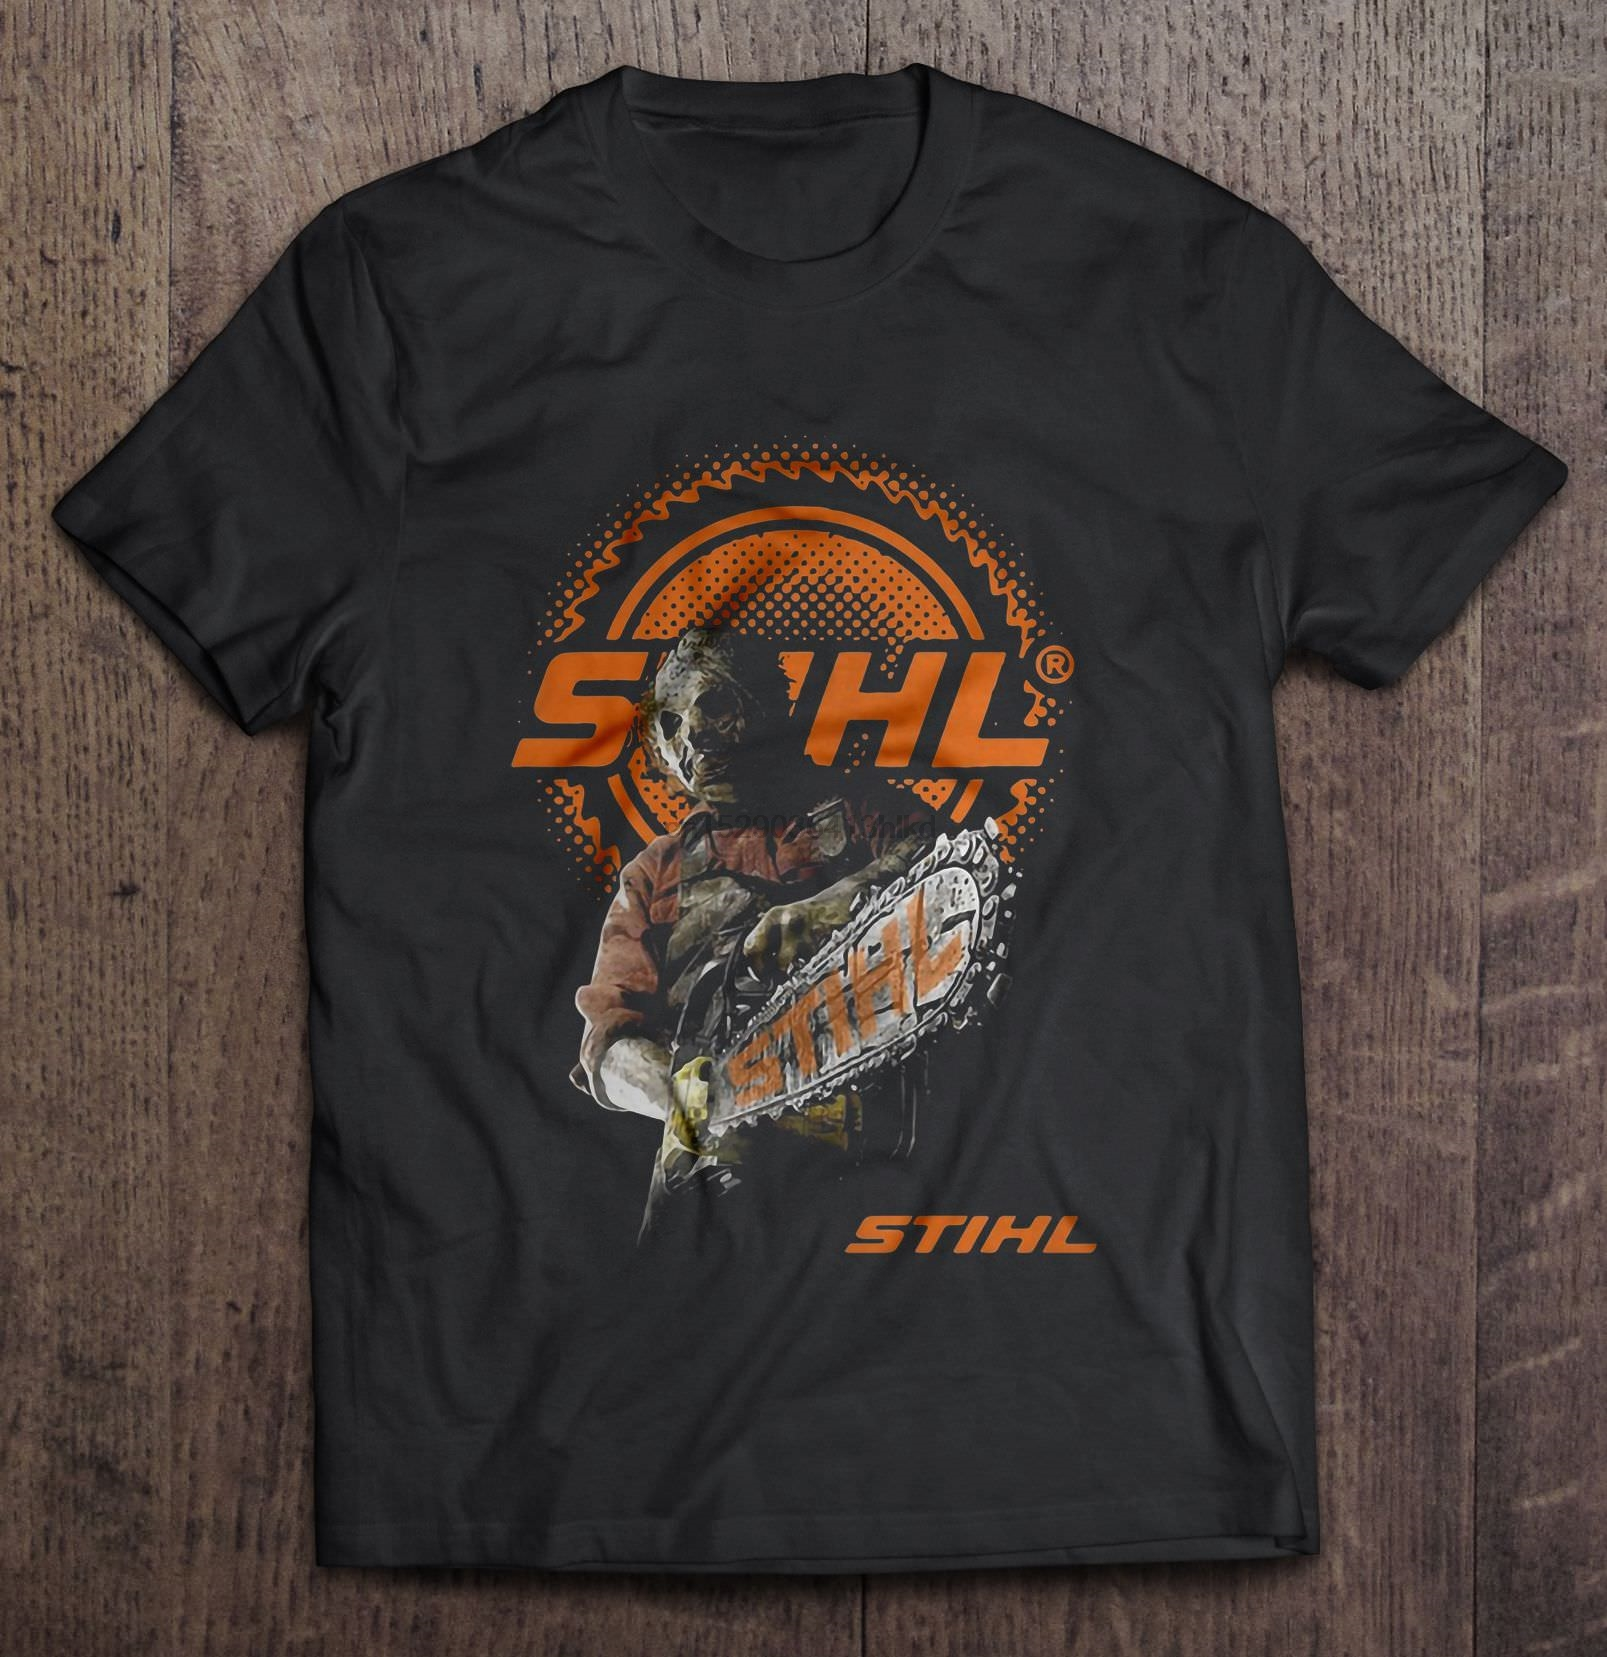 Stihl T-Shirt Powered By Power Equipment Chainsaws Trimmers Blowers all Size T23